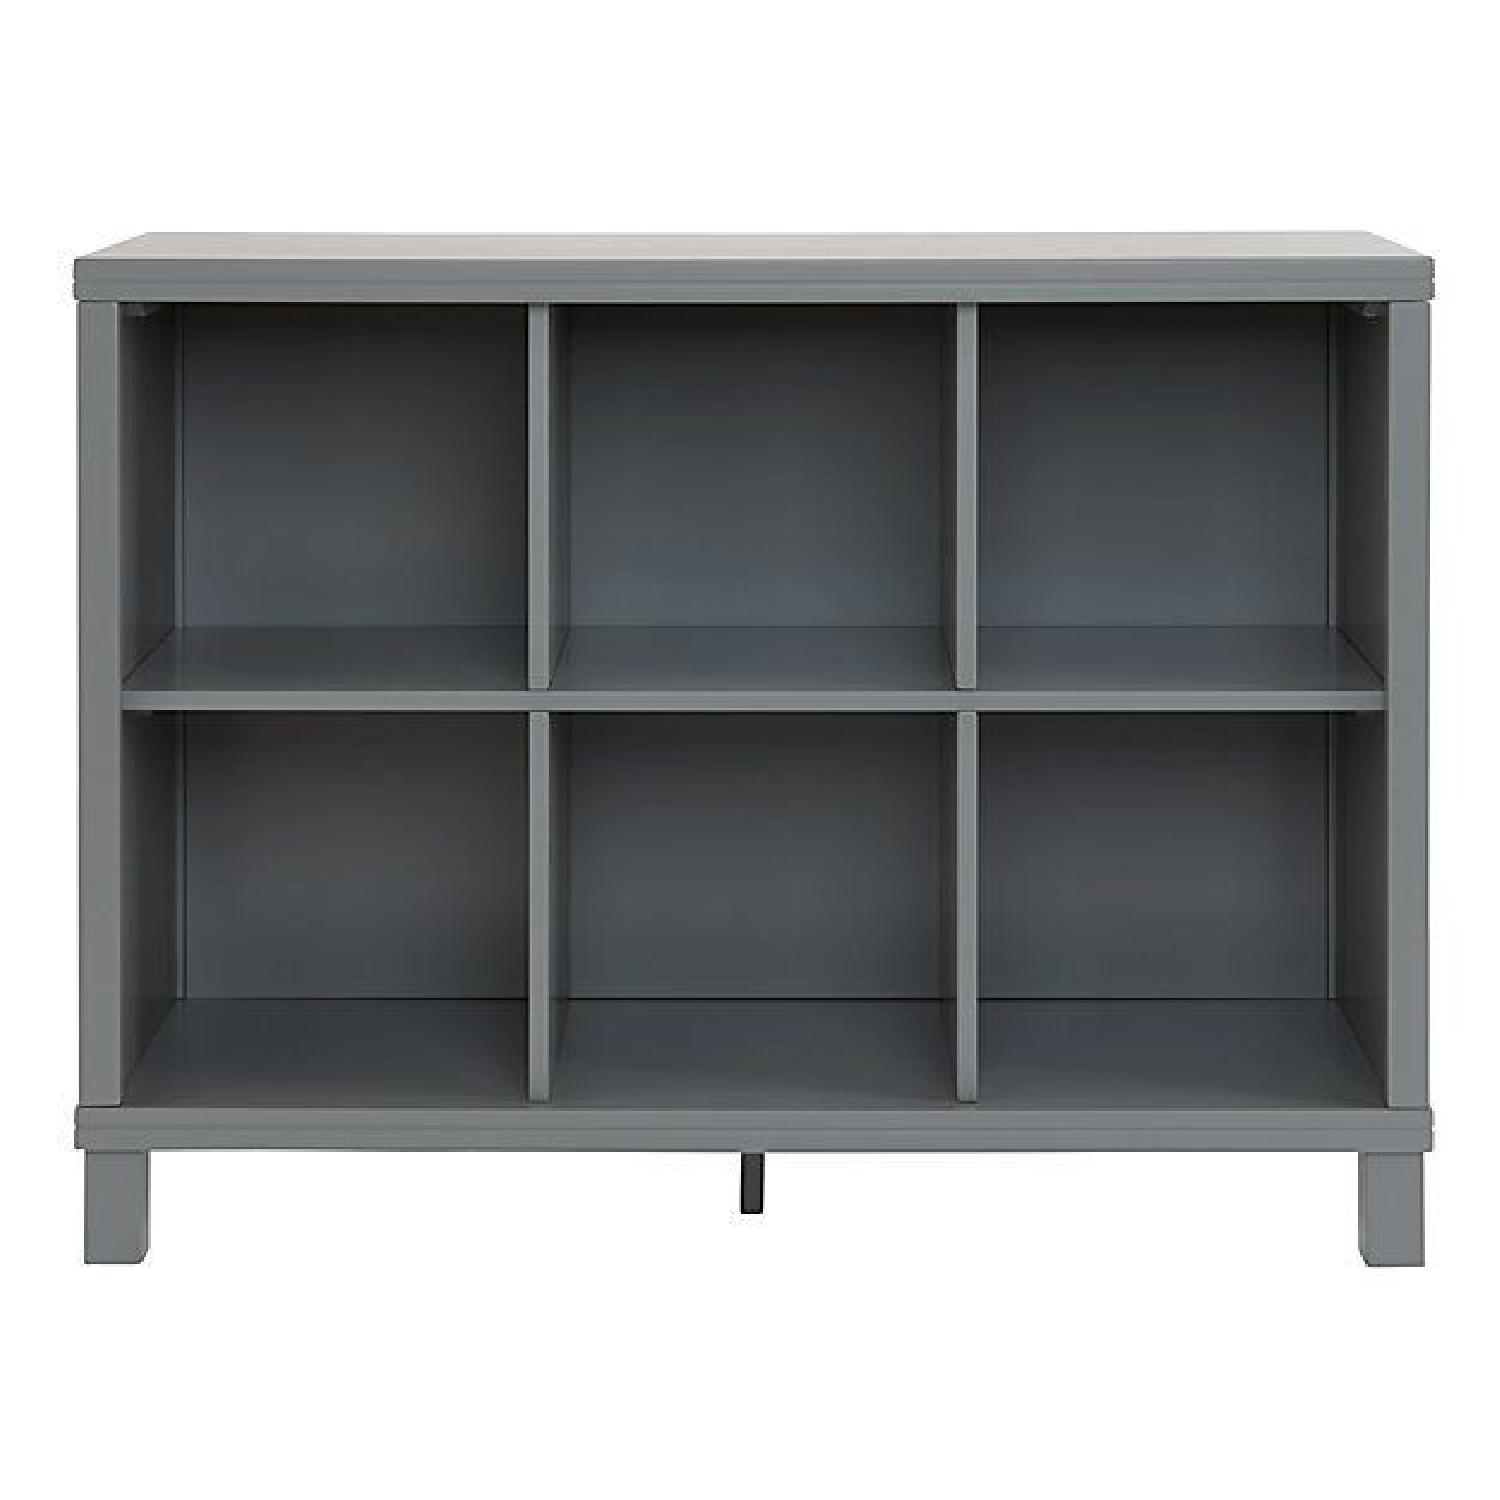 dining oakea baskets derbyshire painted with bookcase furniture d room grey large